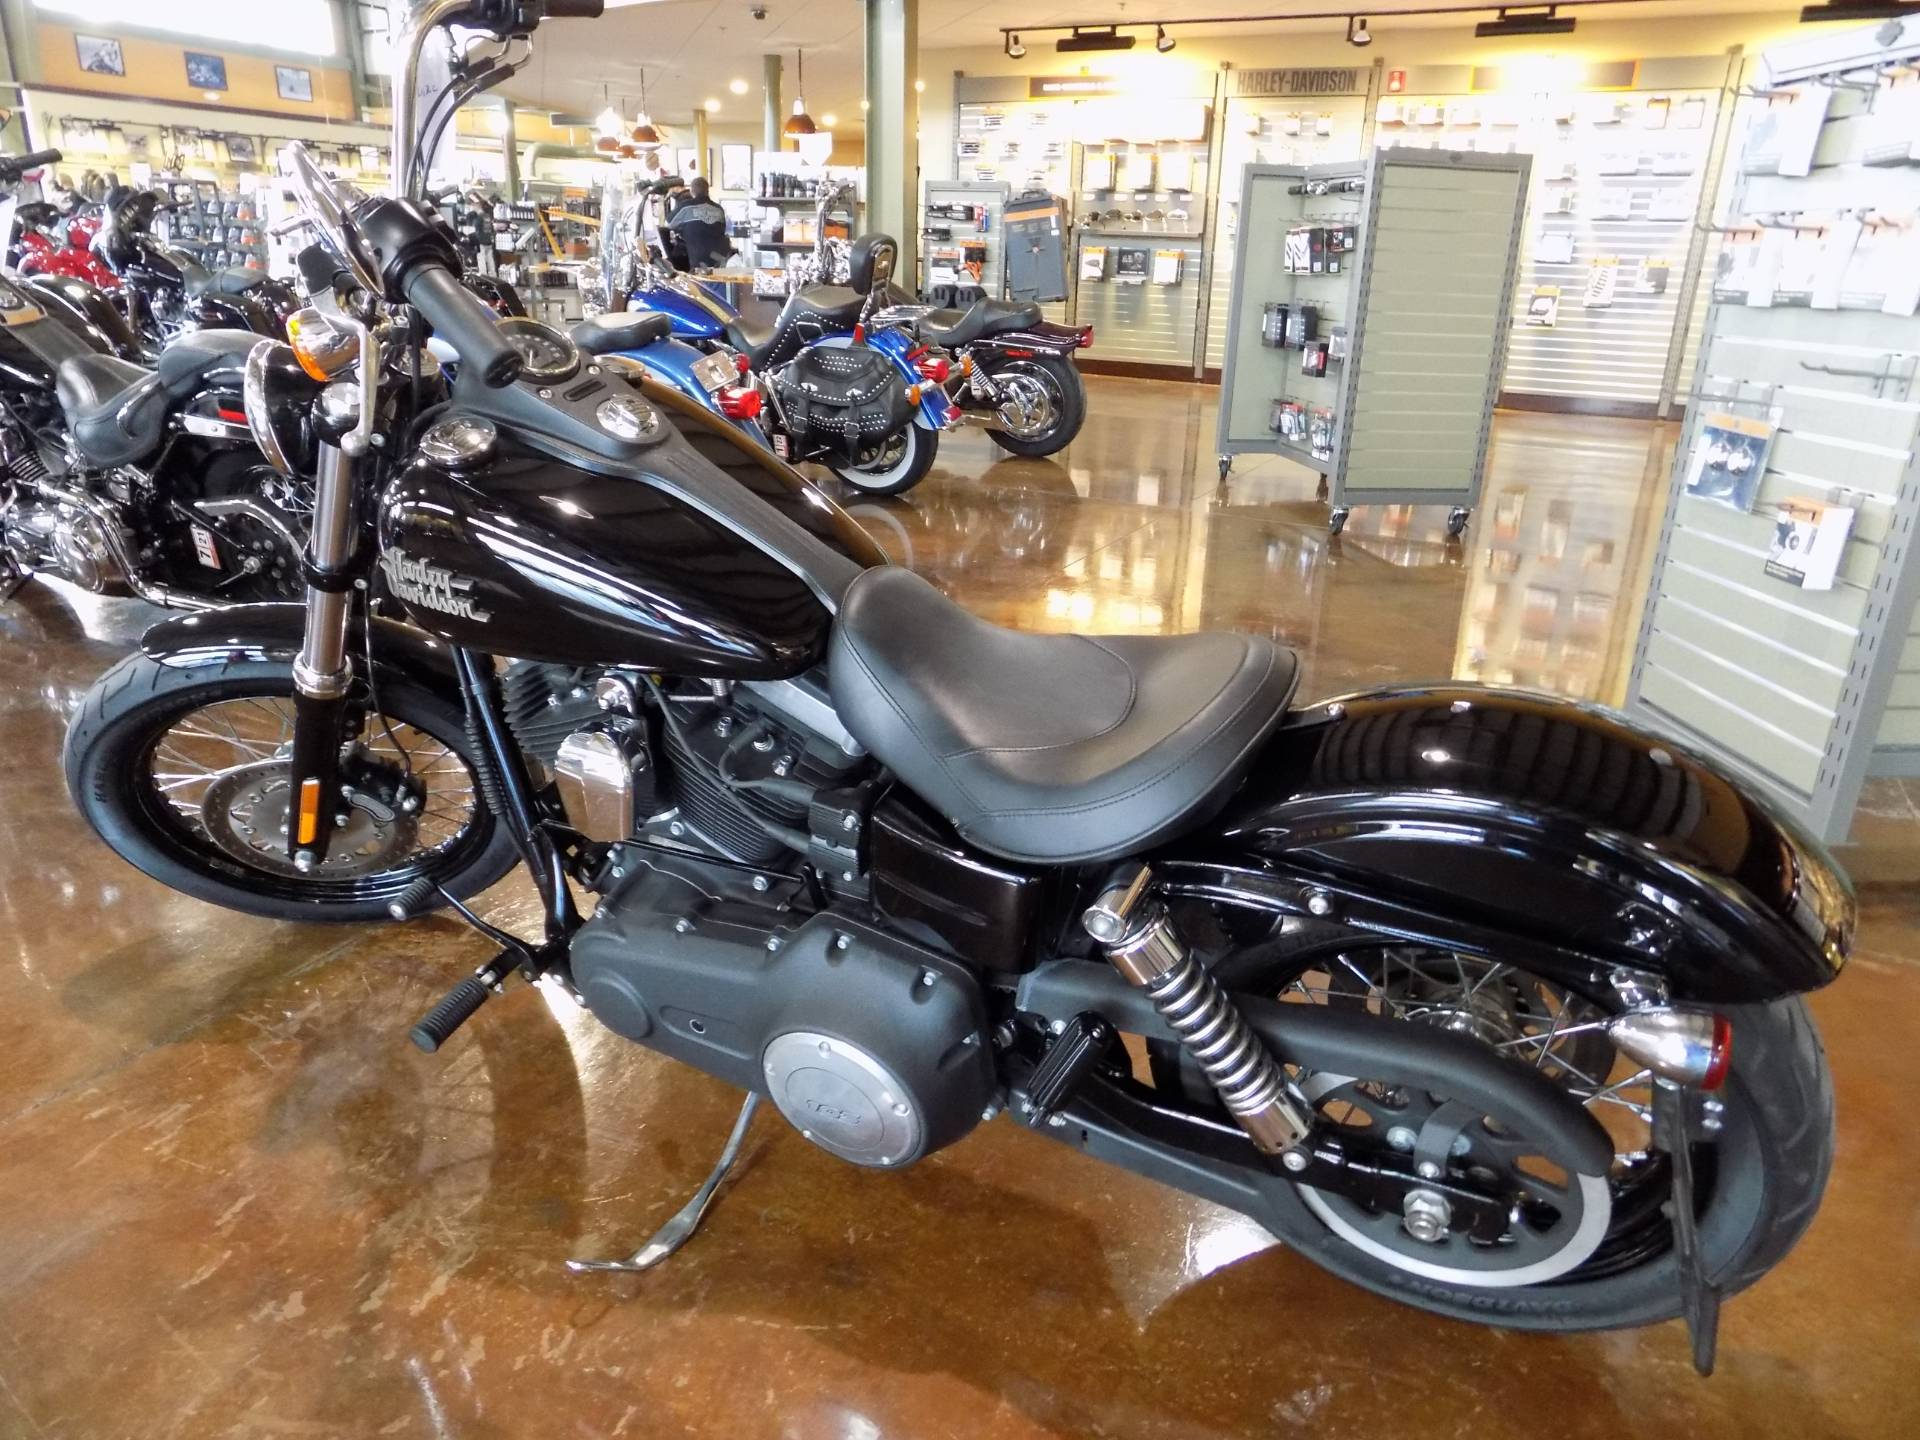 2015 Harley-Davidson STREET BOB in Winchester, Virginia - Photo 3